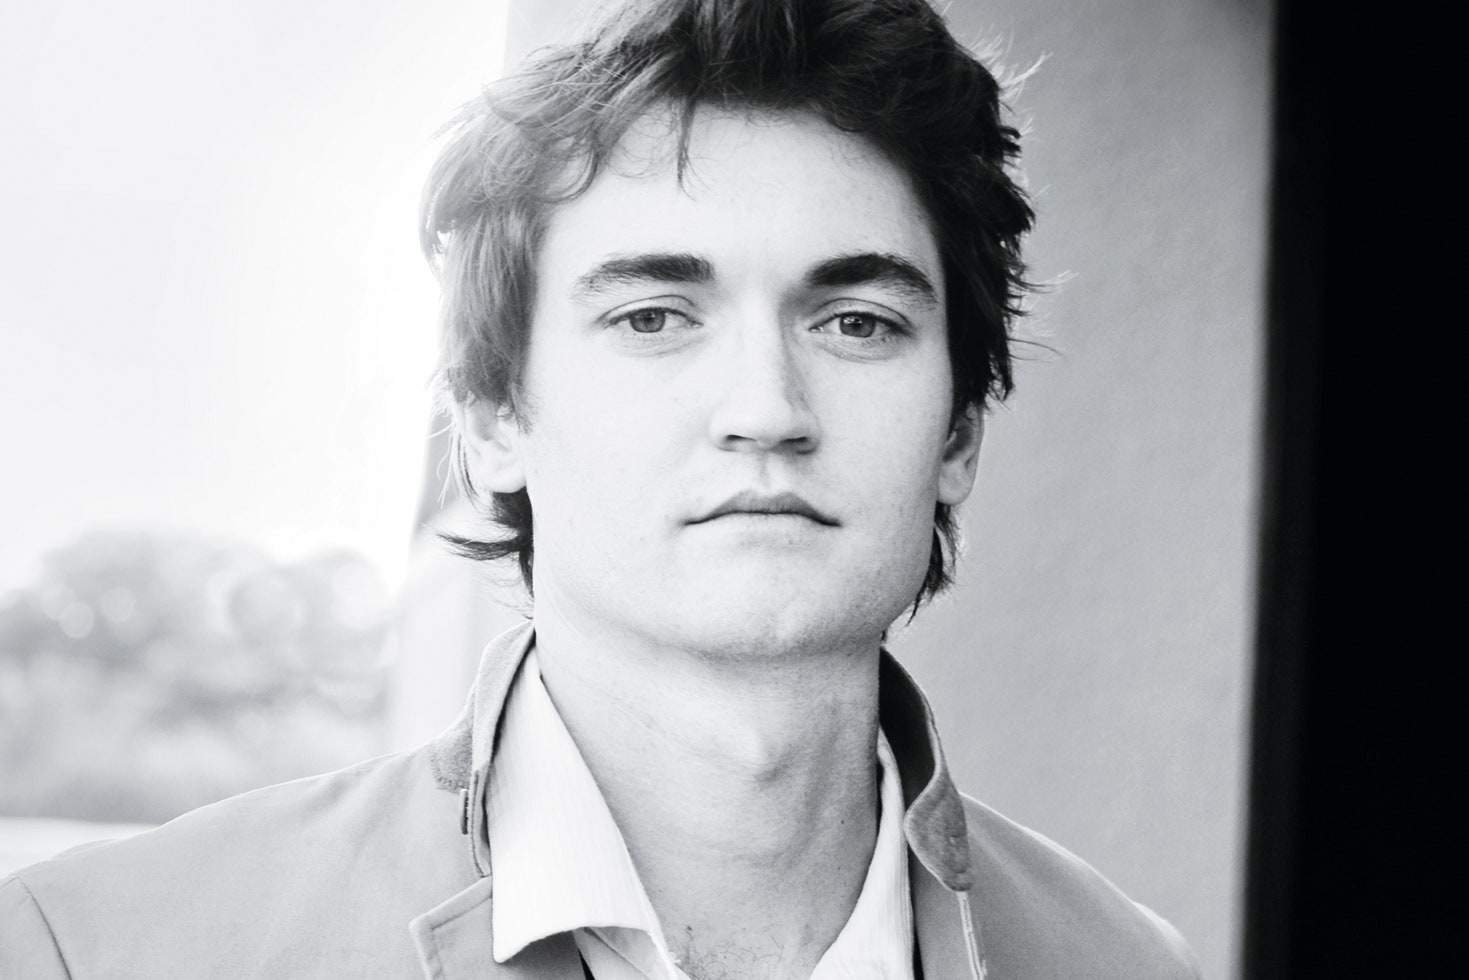 Part 2 of the Dark Web: The Silk Road & Ross Ulbricht (AKA The Dread Pirate Roberts)